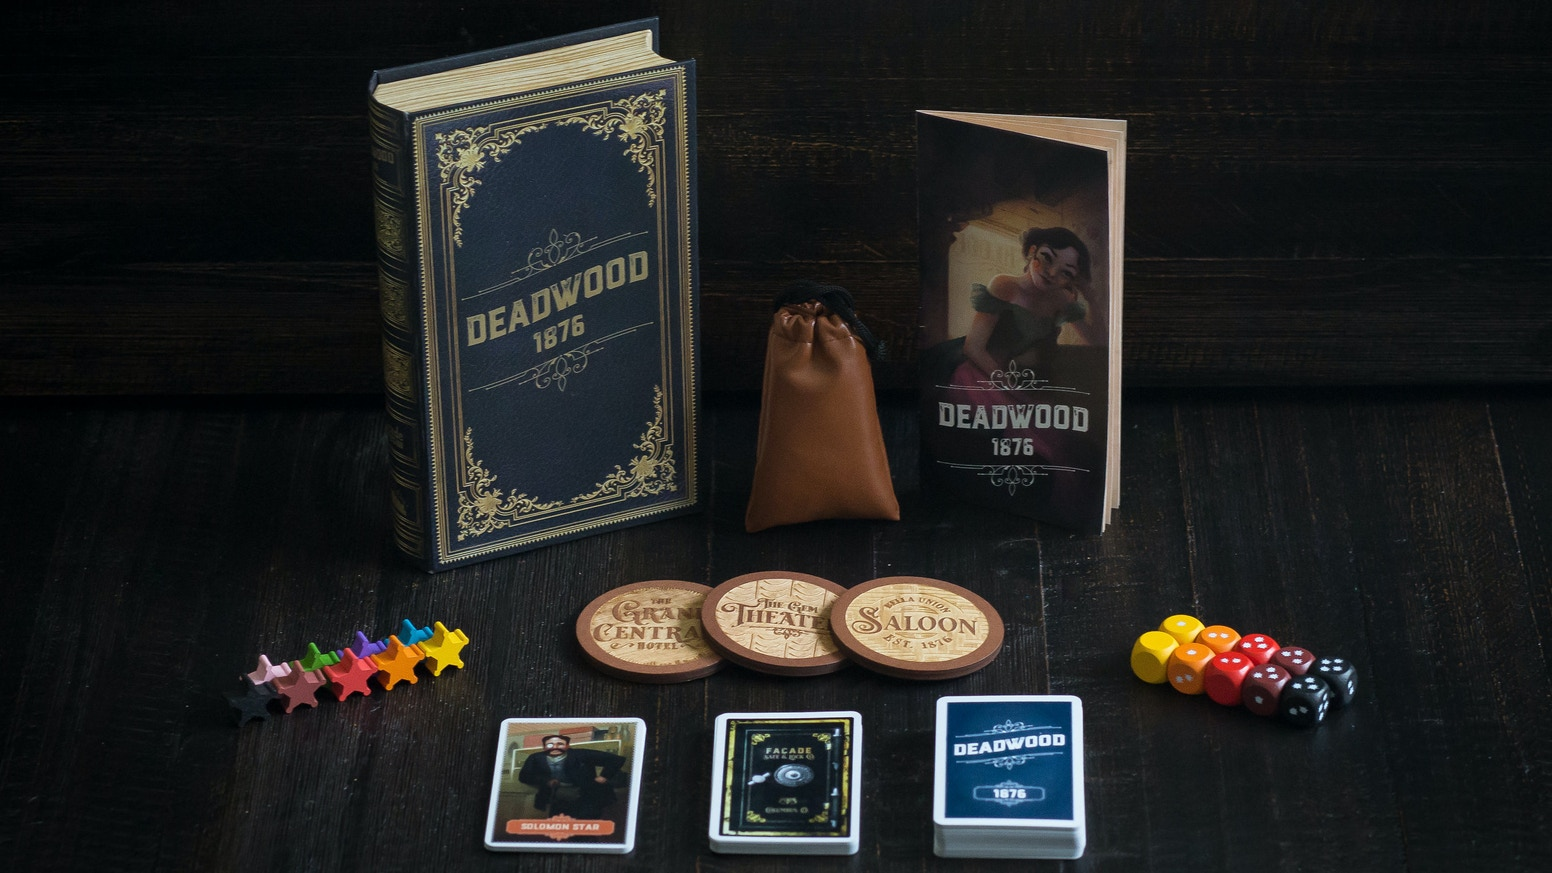 deadwood 1876 a safe robbing game of teamwork betrayal by travis